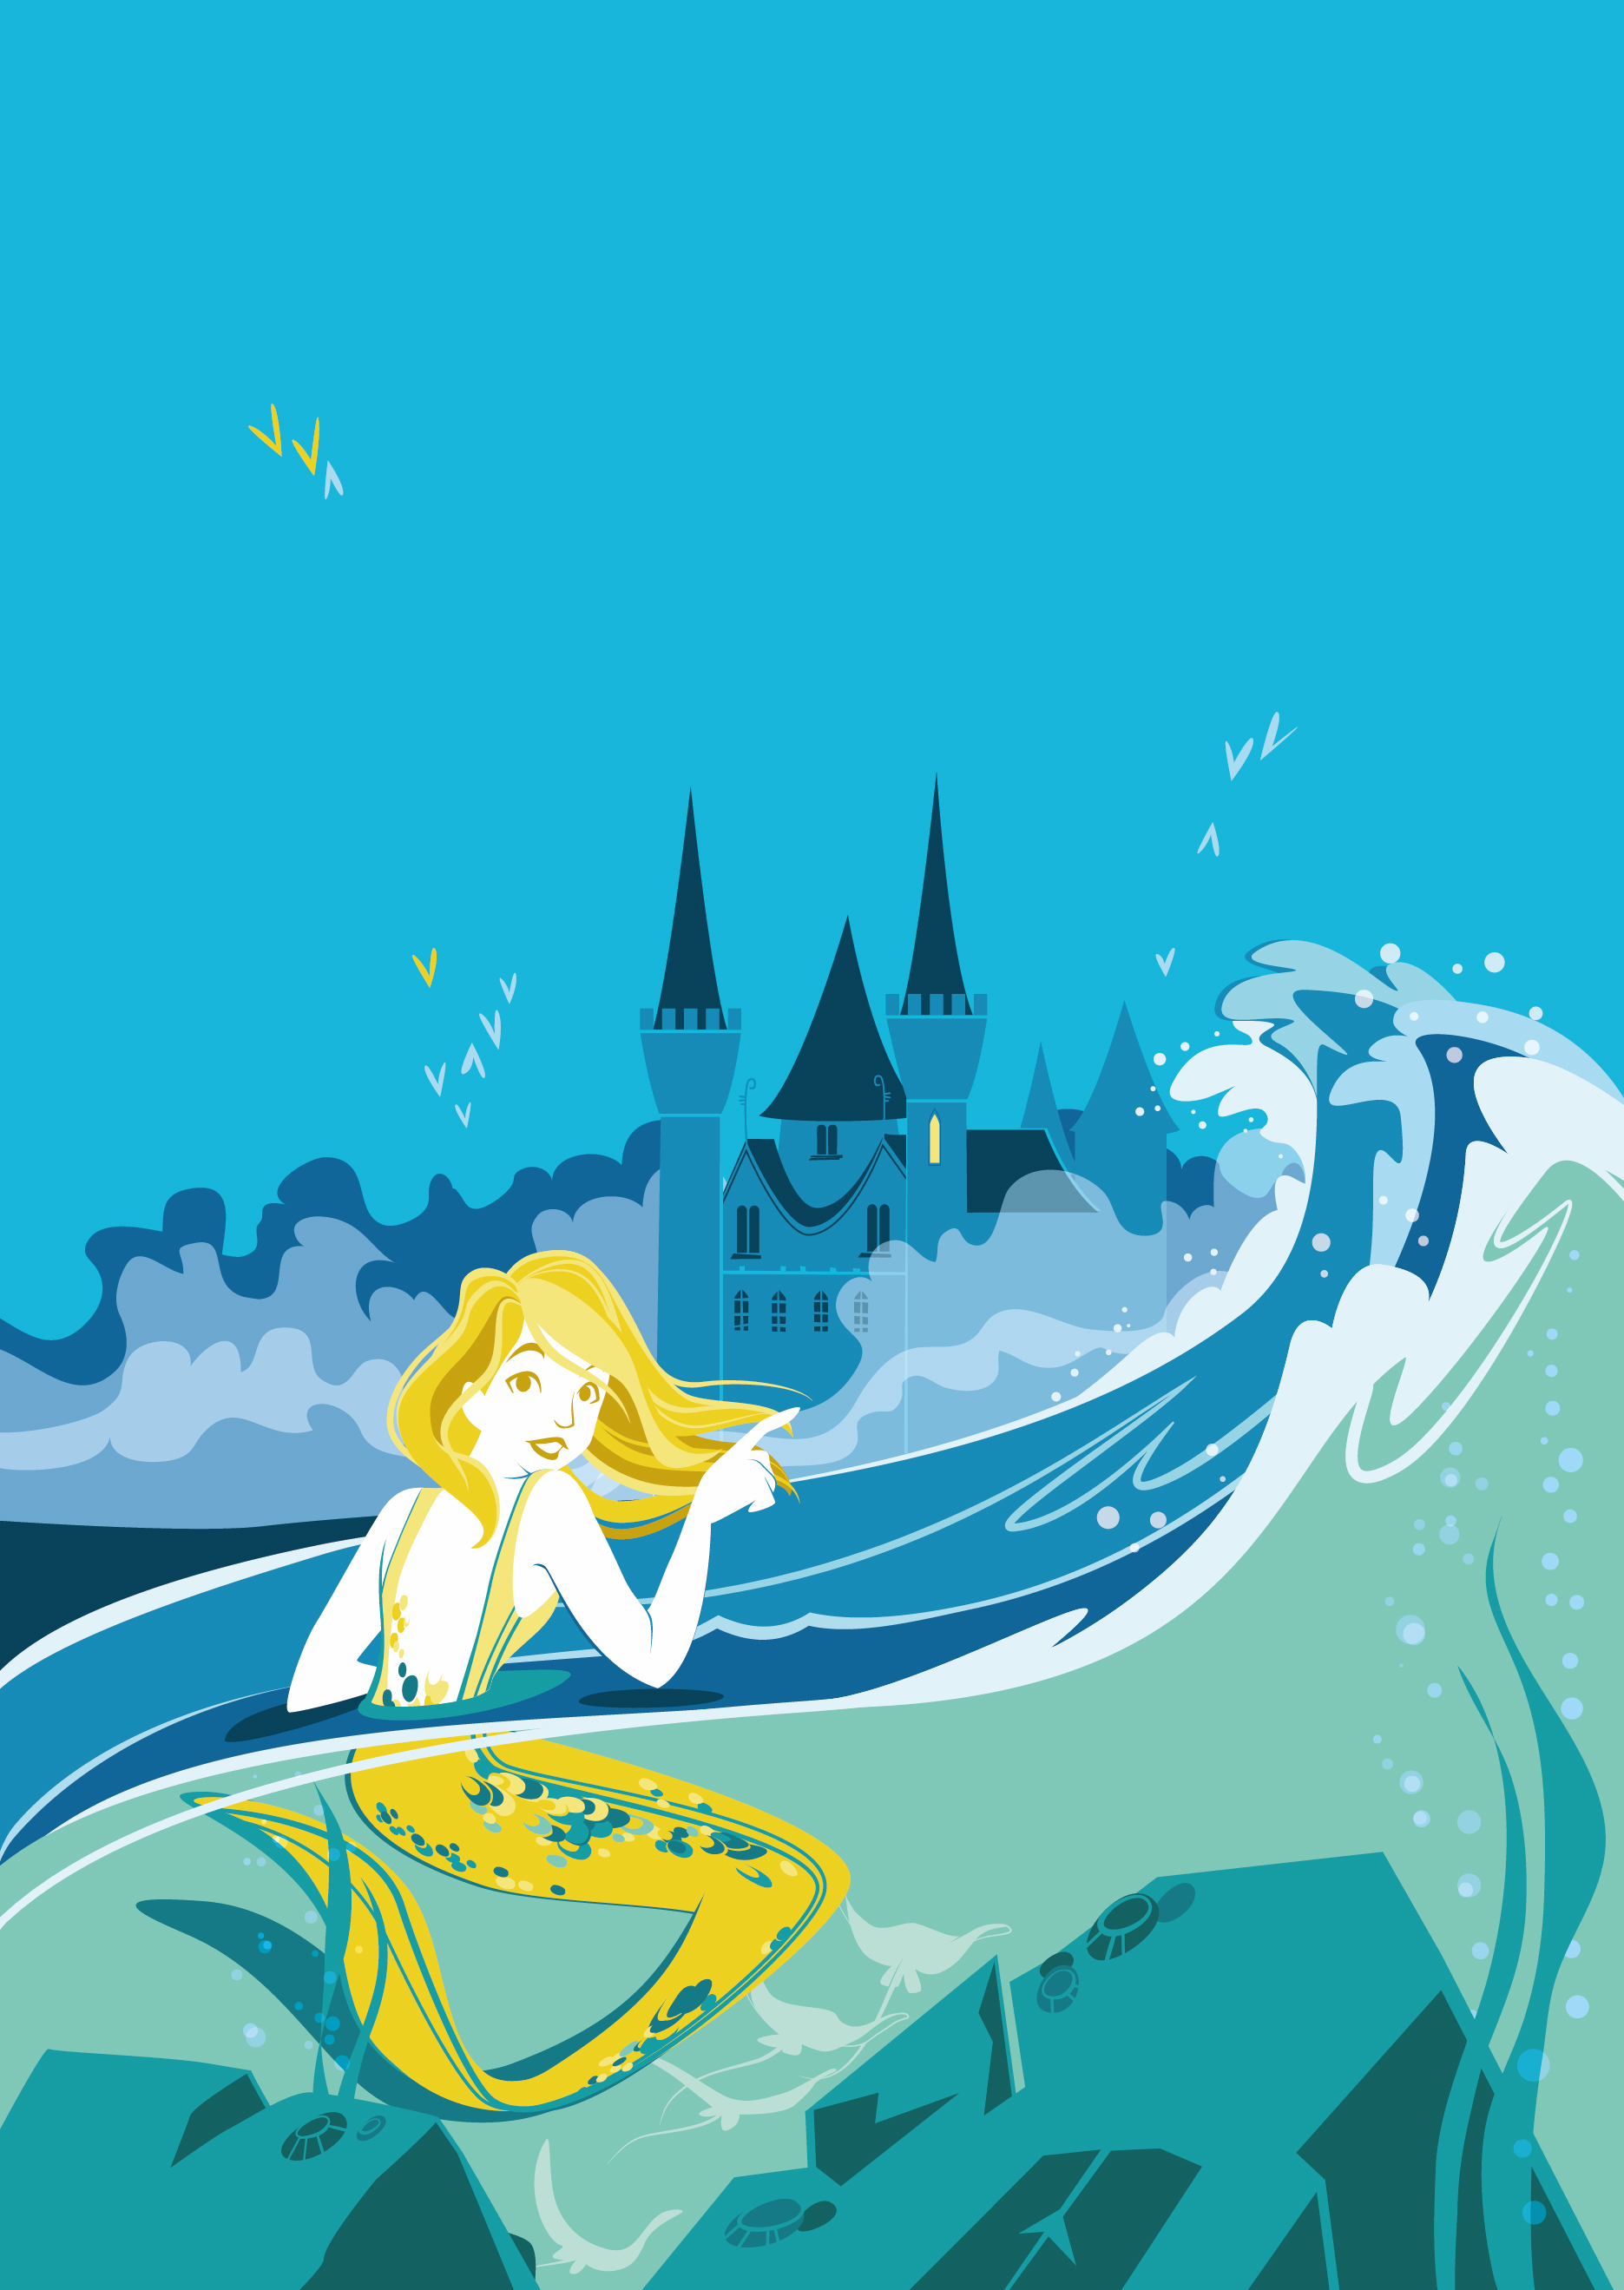 a mermaid discovers a magical and mysterious castle hidden by fog